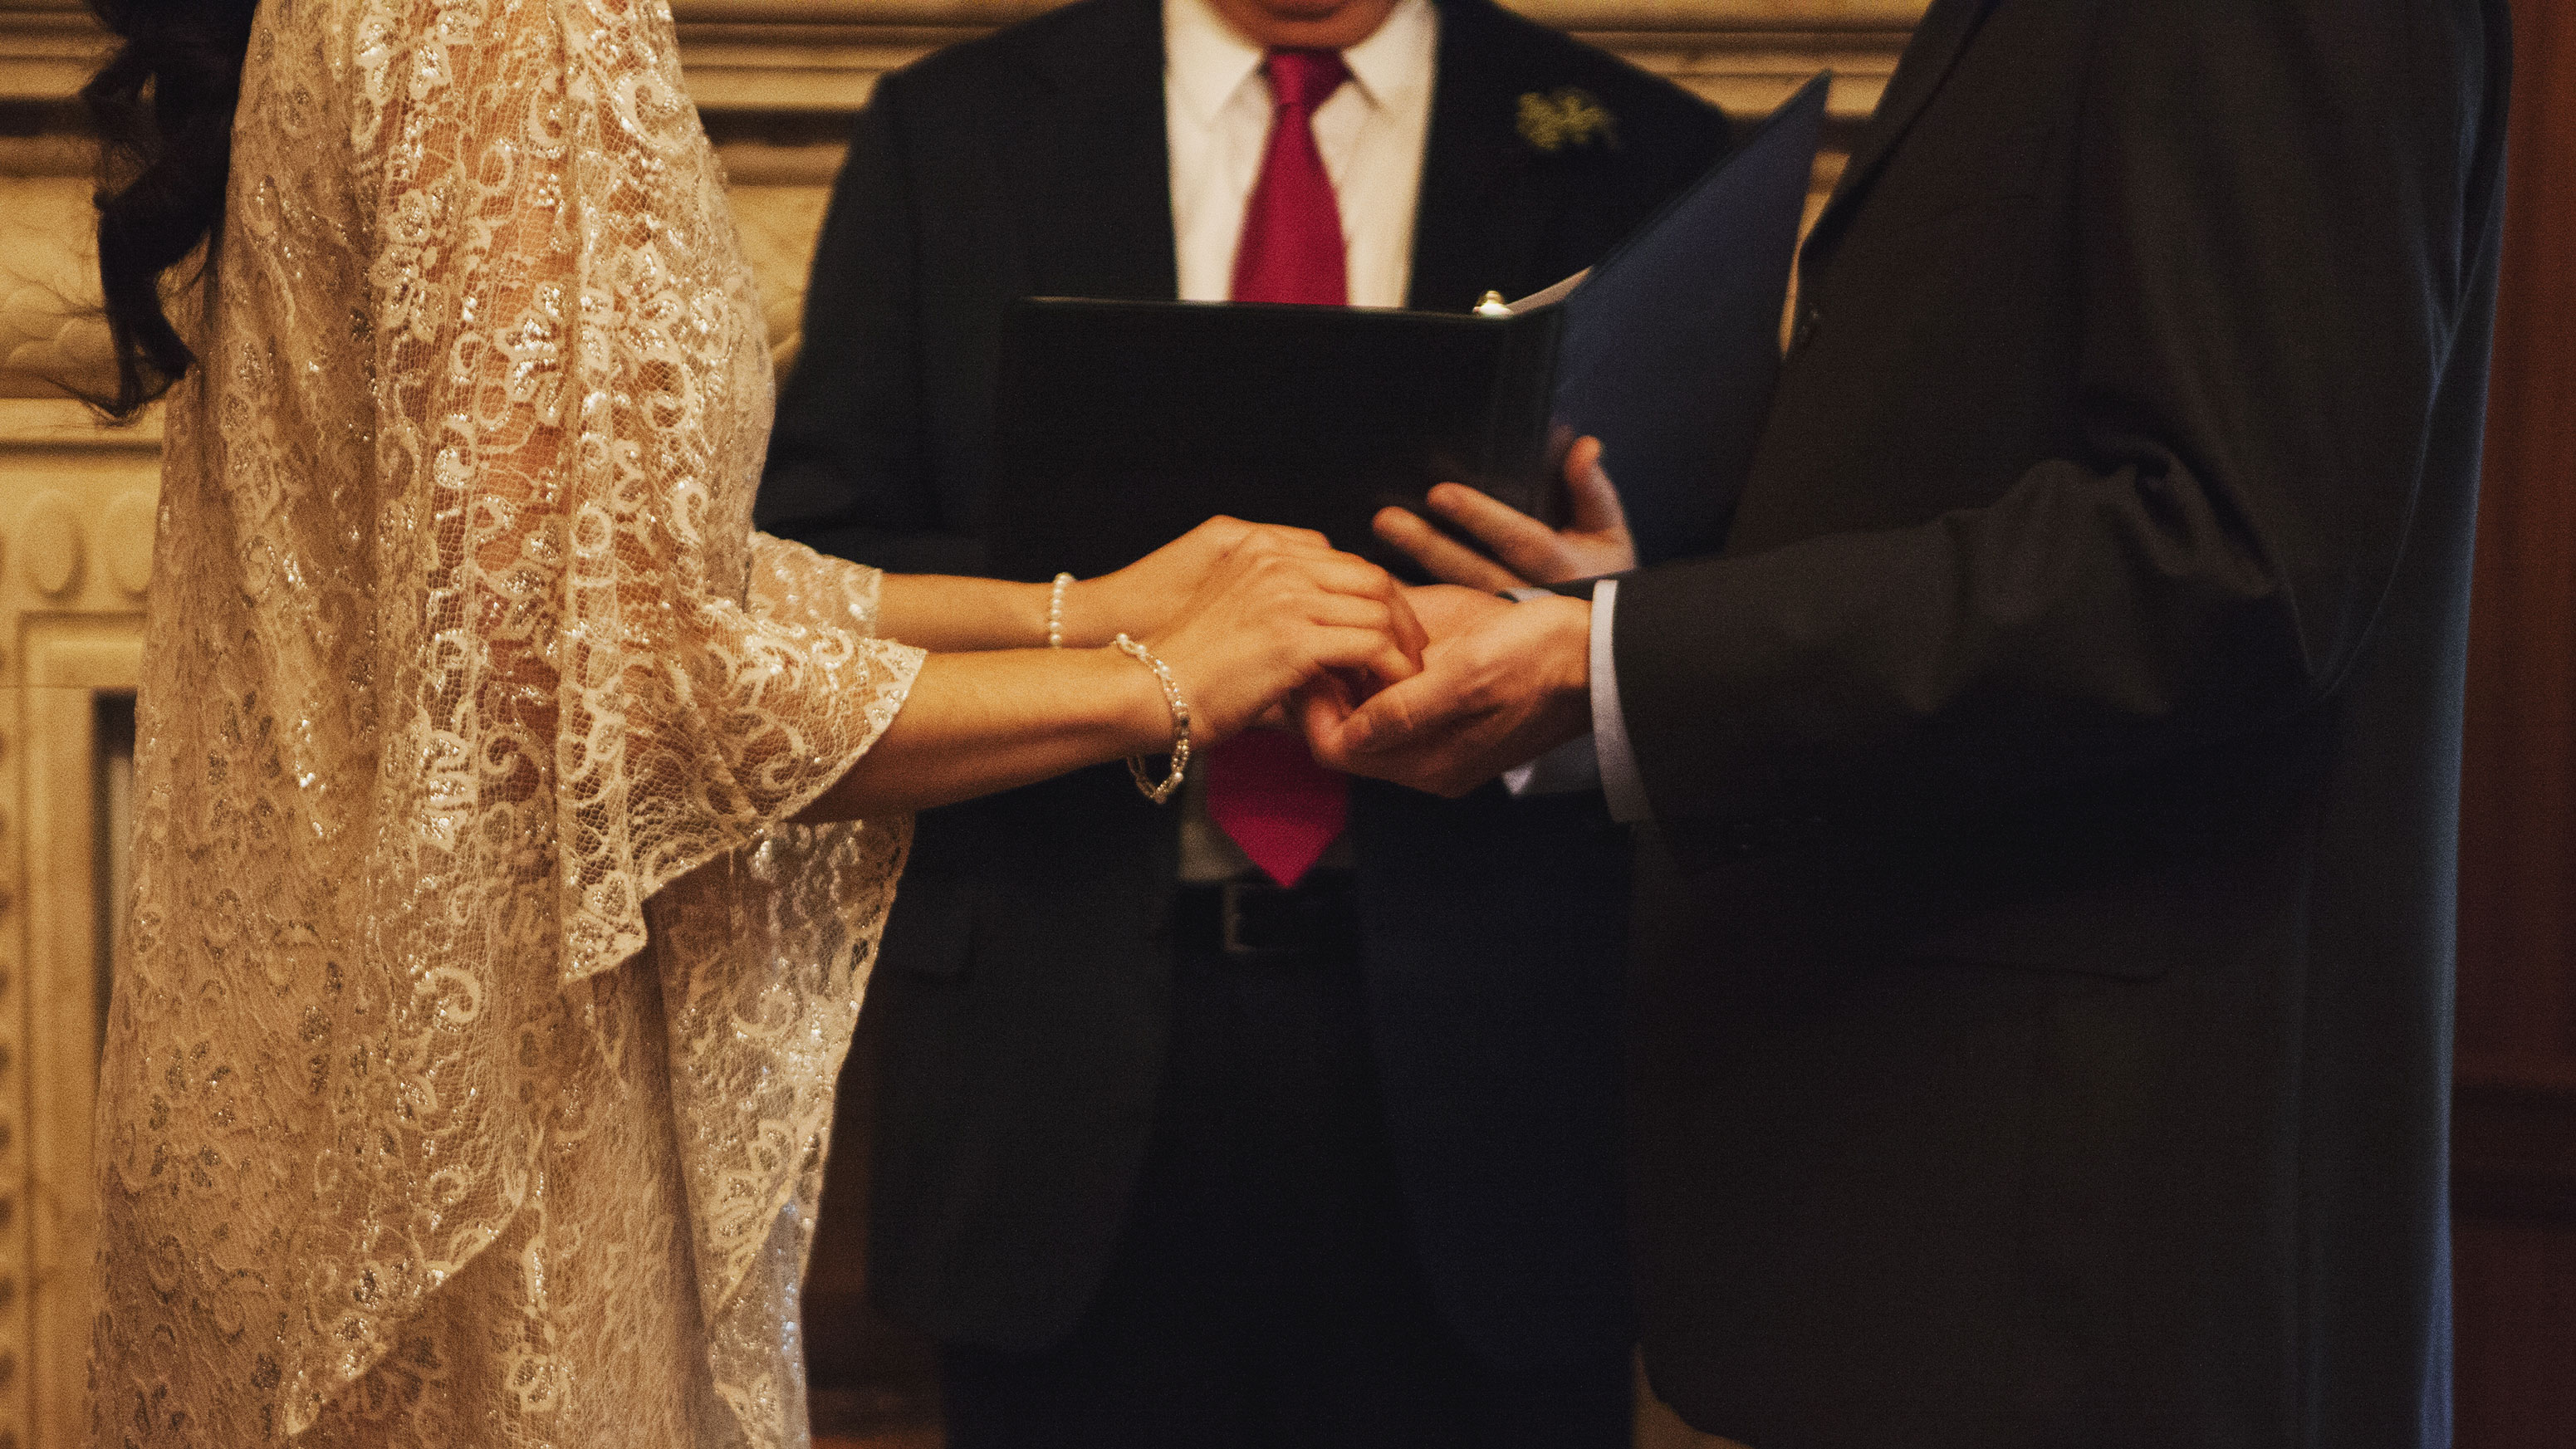 Dave and Lindsey's hands joined together in an exchange of wedding vows.